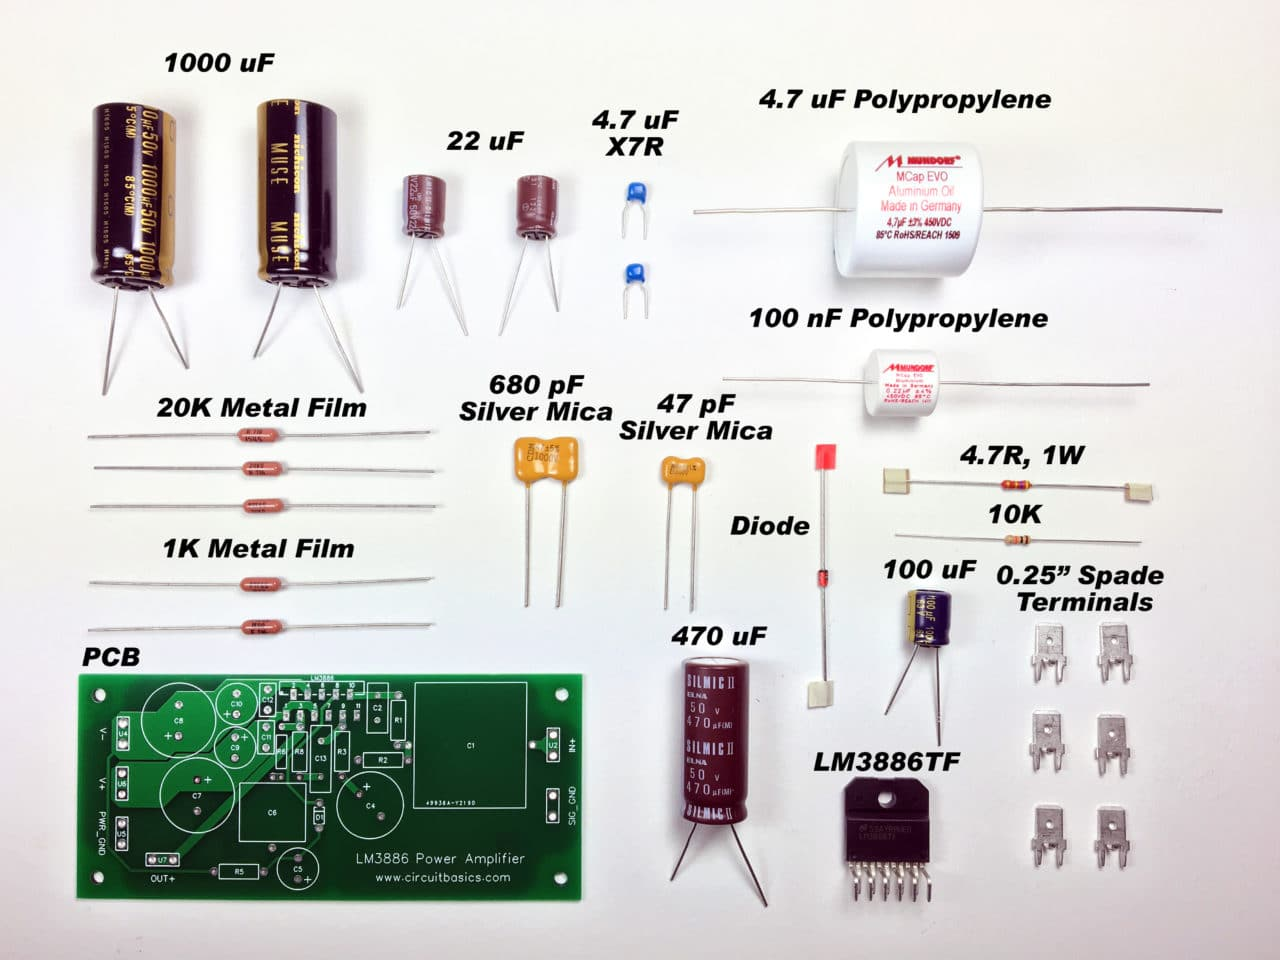 A Complete Guide To Design And Build Hi Fi Lm3886 Amplifier The Circuits Can Be Used Anywhere Power Zener Diode Function Would Total Cost Came About 118 For Both Channels Not Including Chassis Supply Wiring Parts You It Lot Less With Cheaper